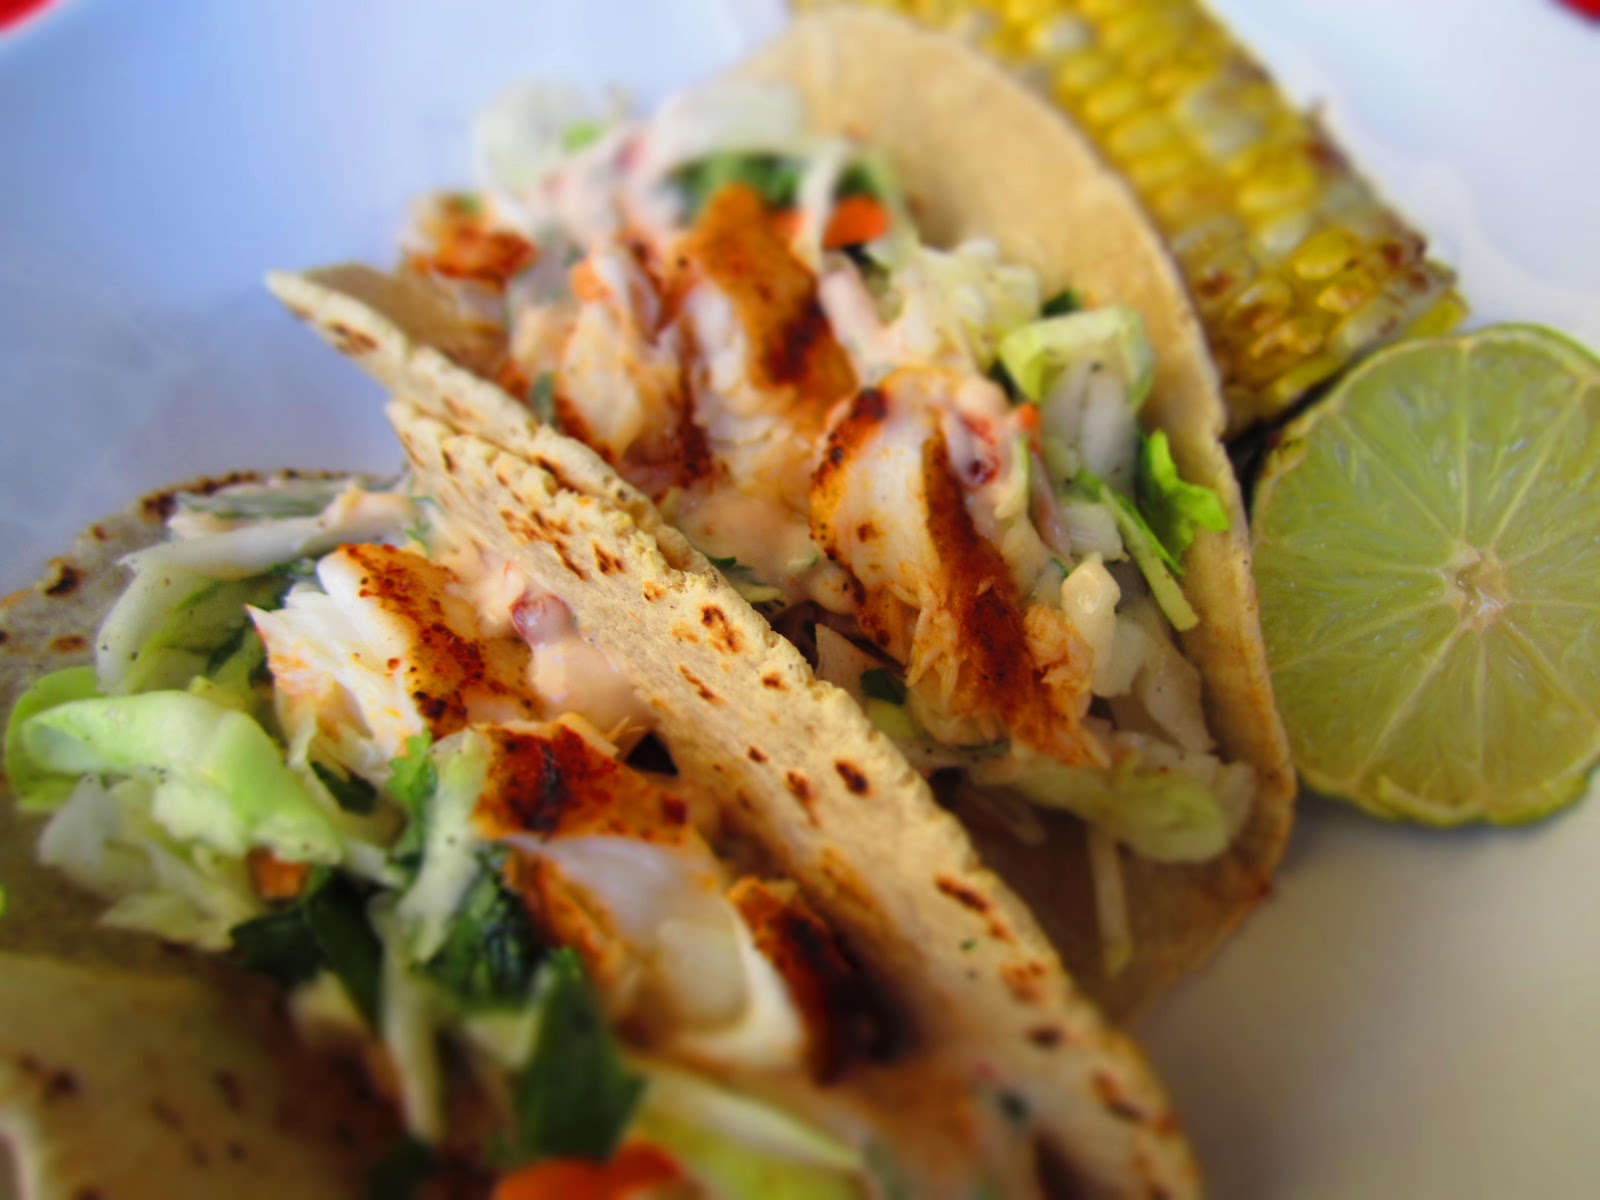 ... Grilled Fish Tacos with Chipotle-Lime Sauce